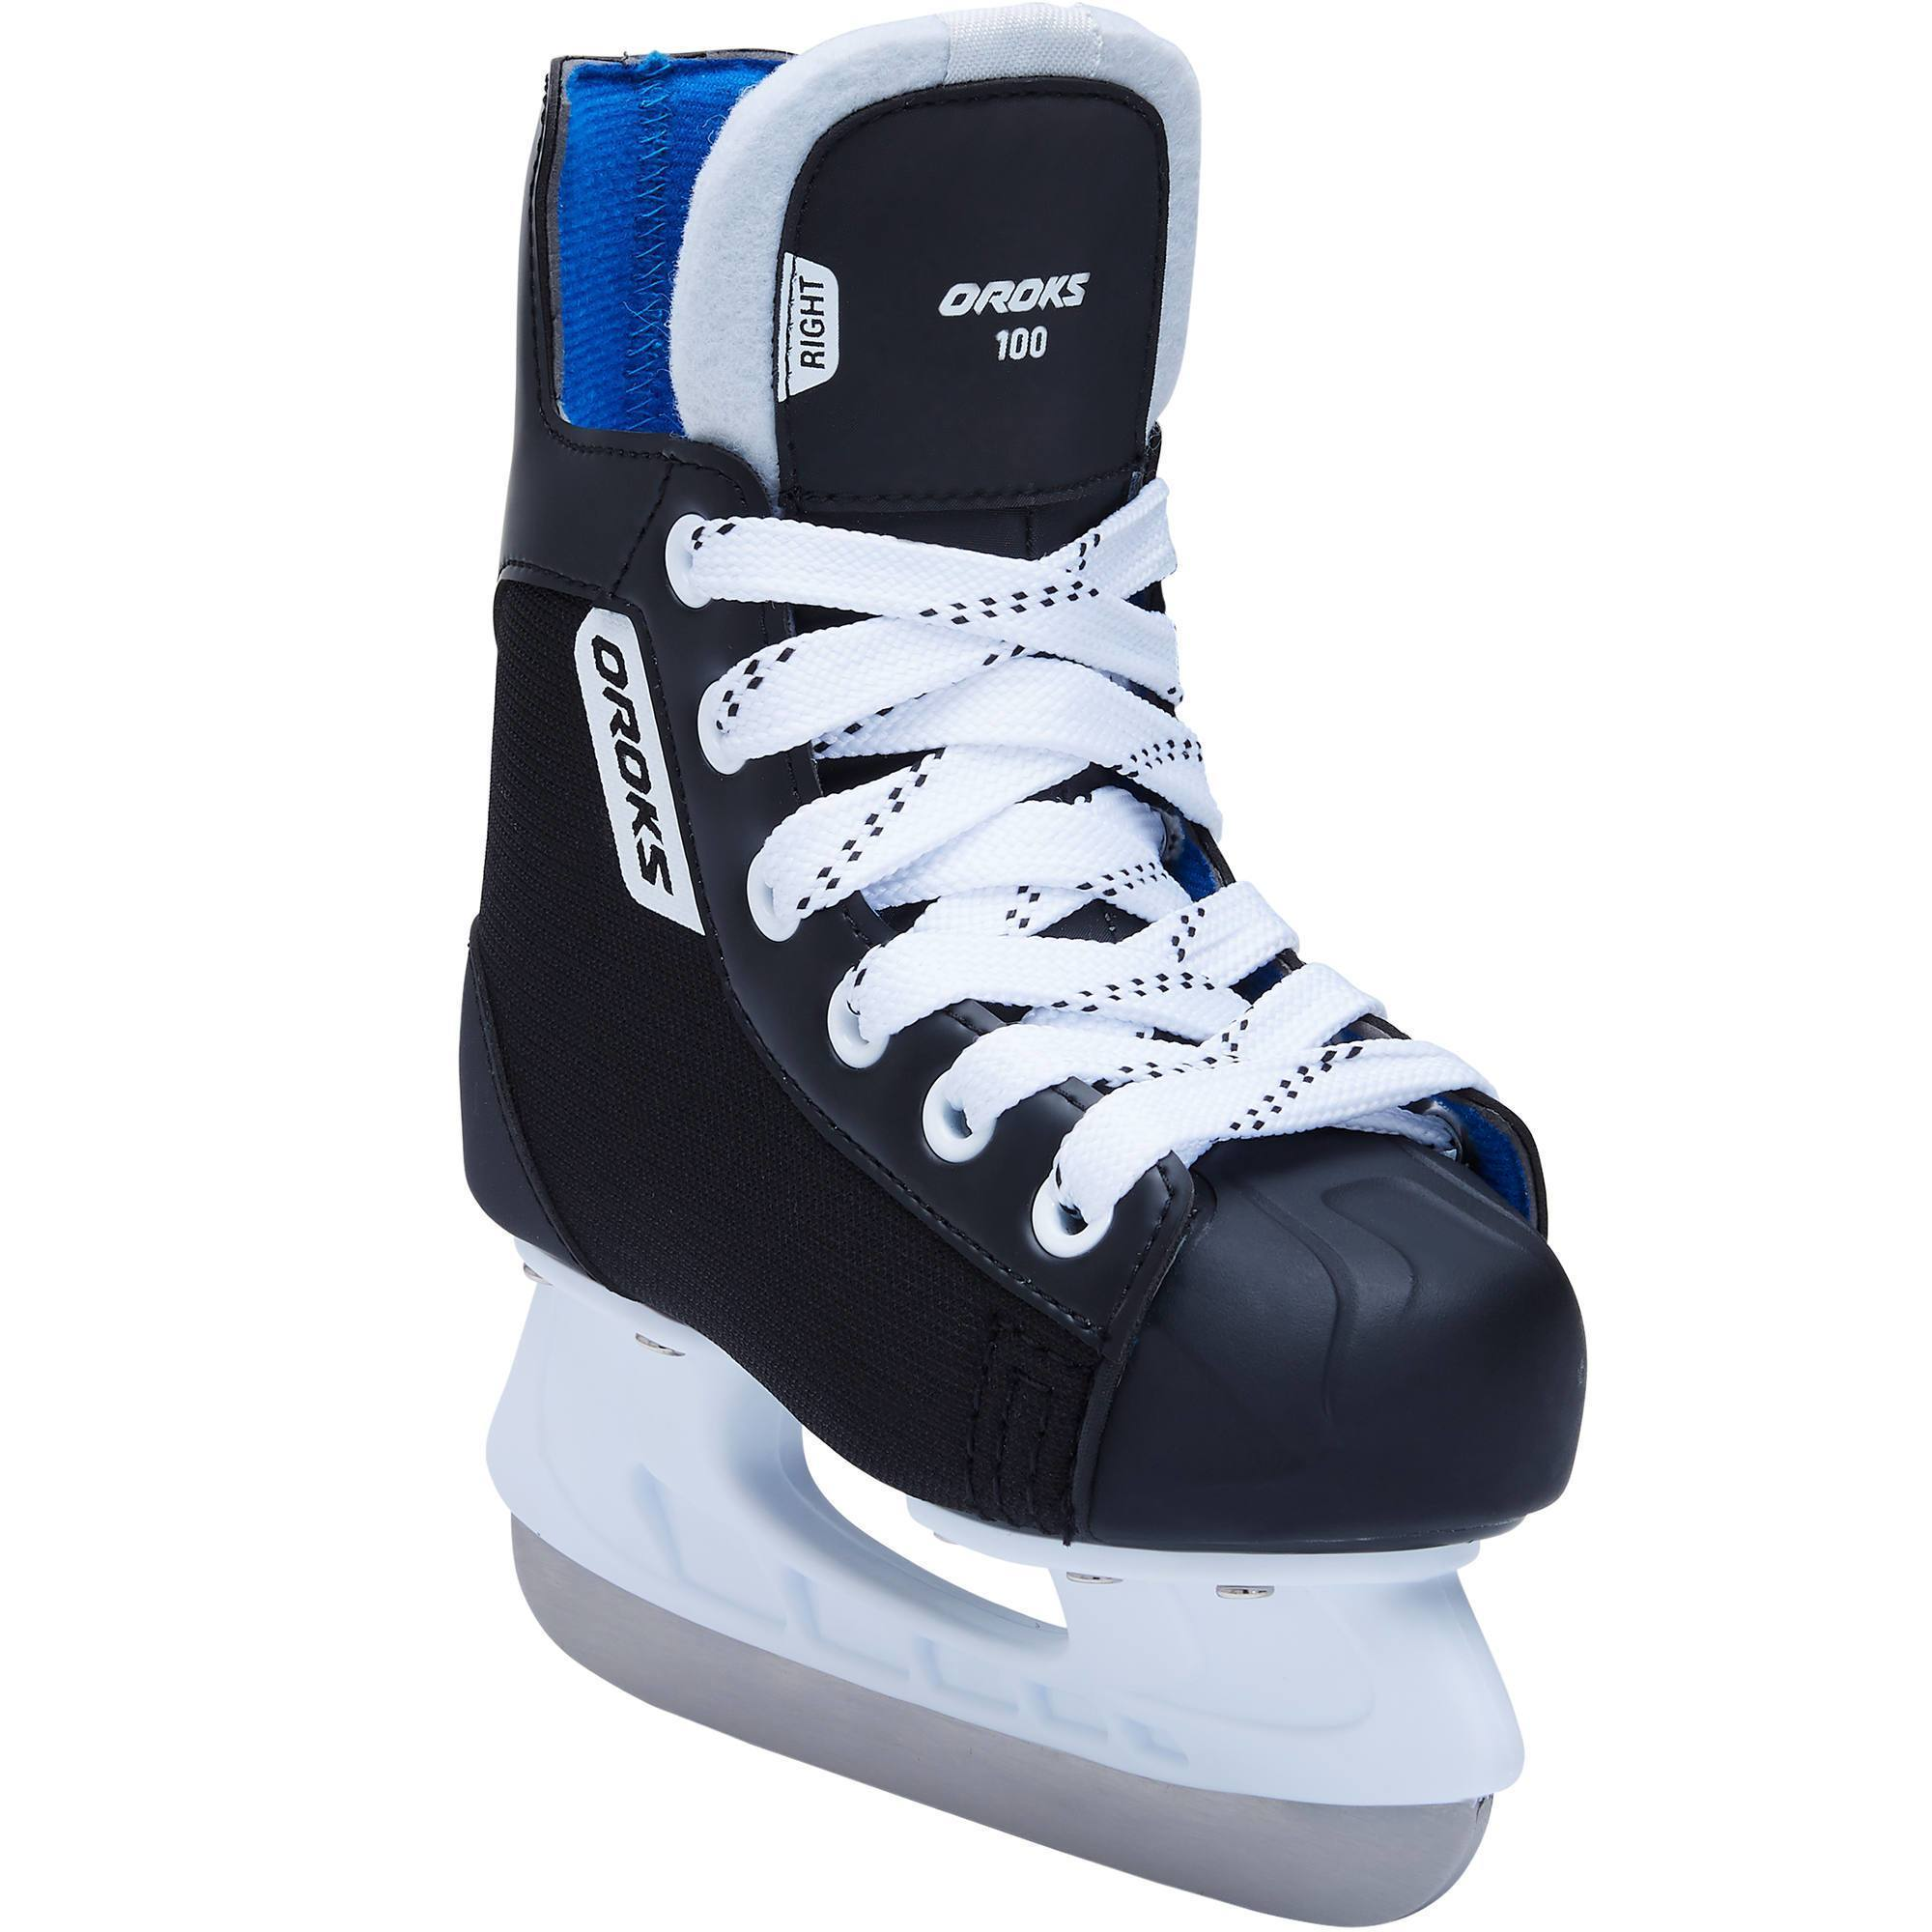 PATIN DE HOCKEY IHS100 JR